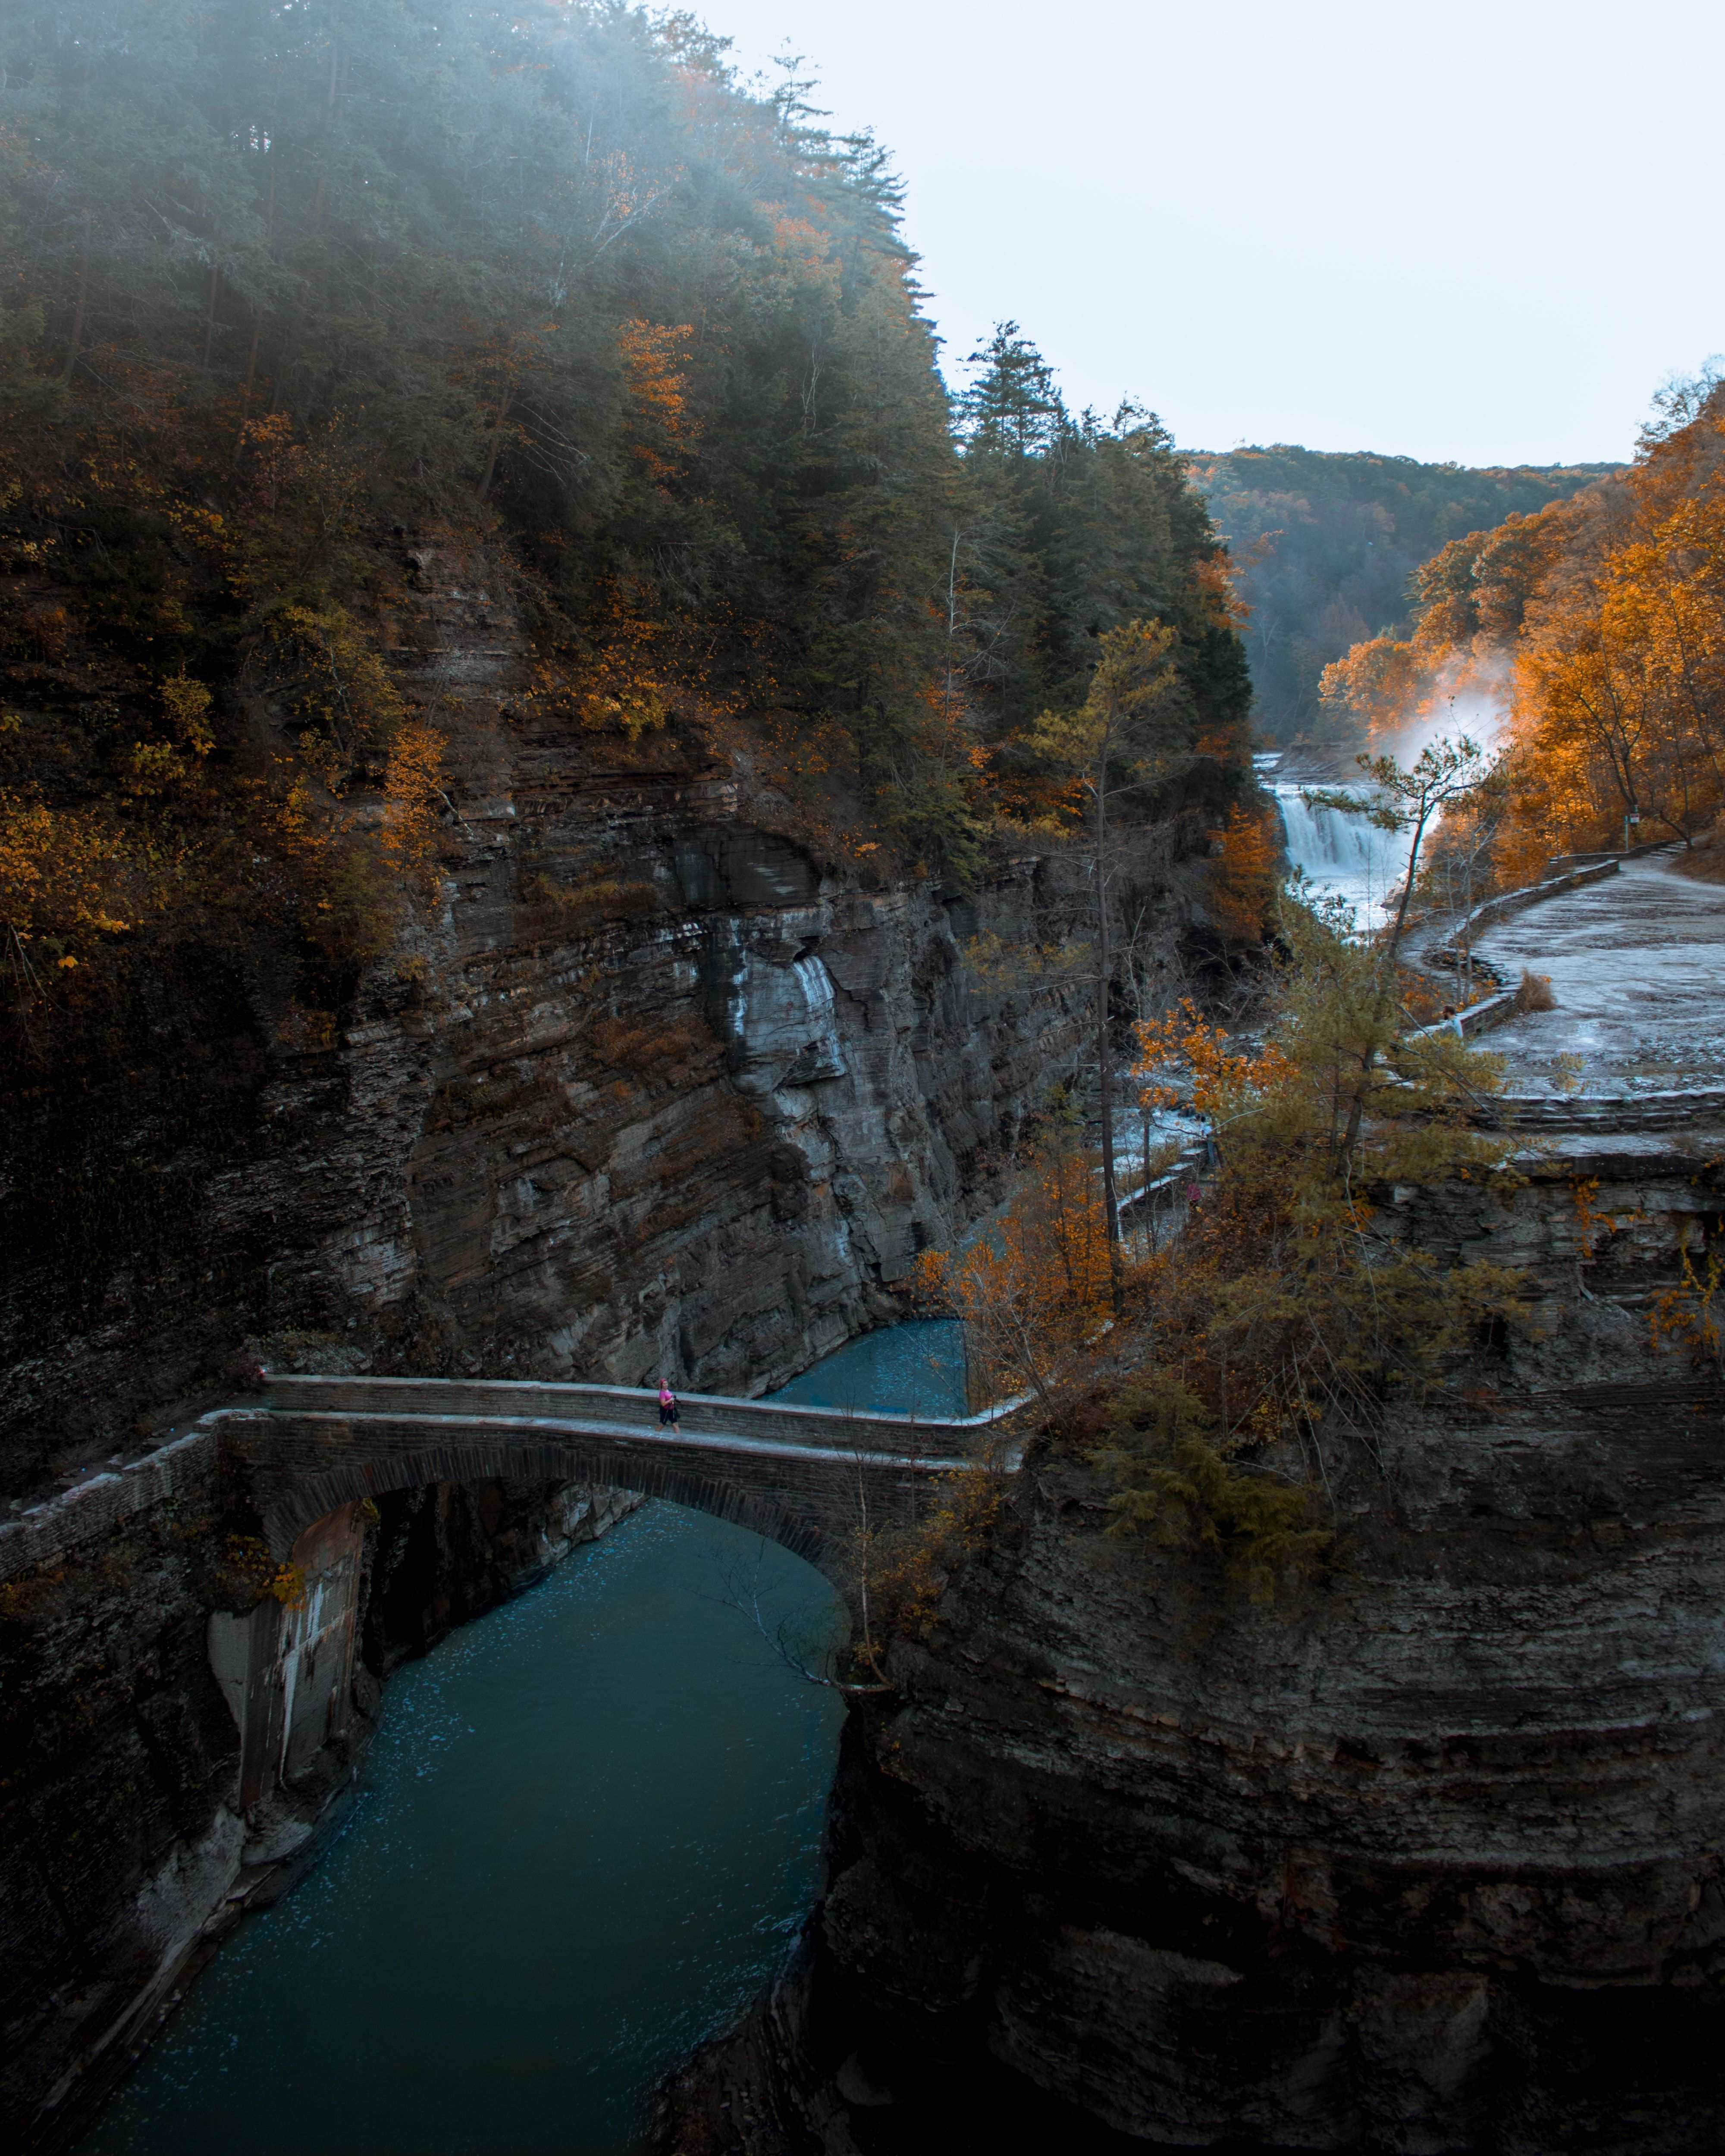 #forest  #water  #letchworth state park - mt. morris entrance #aerial #photography #of  aerial photography of river and bridge Letchworth in Fall #letchworthstatepark #forest  #water  #letchworth state park - mt. morris entrance #aerial #photography #of  aerial photography of river and bridge Letchworth in Fall #letchworthstatepark #forest  #water  #letchworth state park - mt. morris entrance #aerial #photography #of  aerial photography of river and bridge Letchworth in Fall #letchworthstatepark #letchworthstatepark